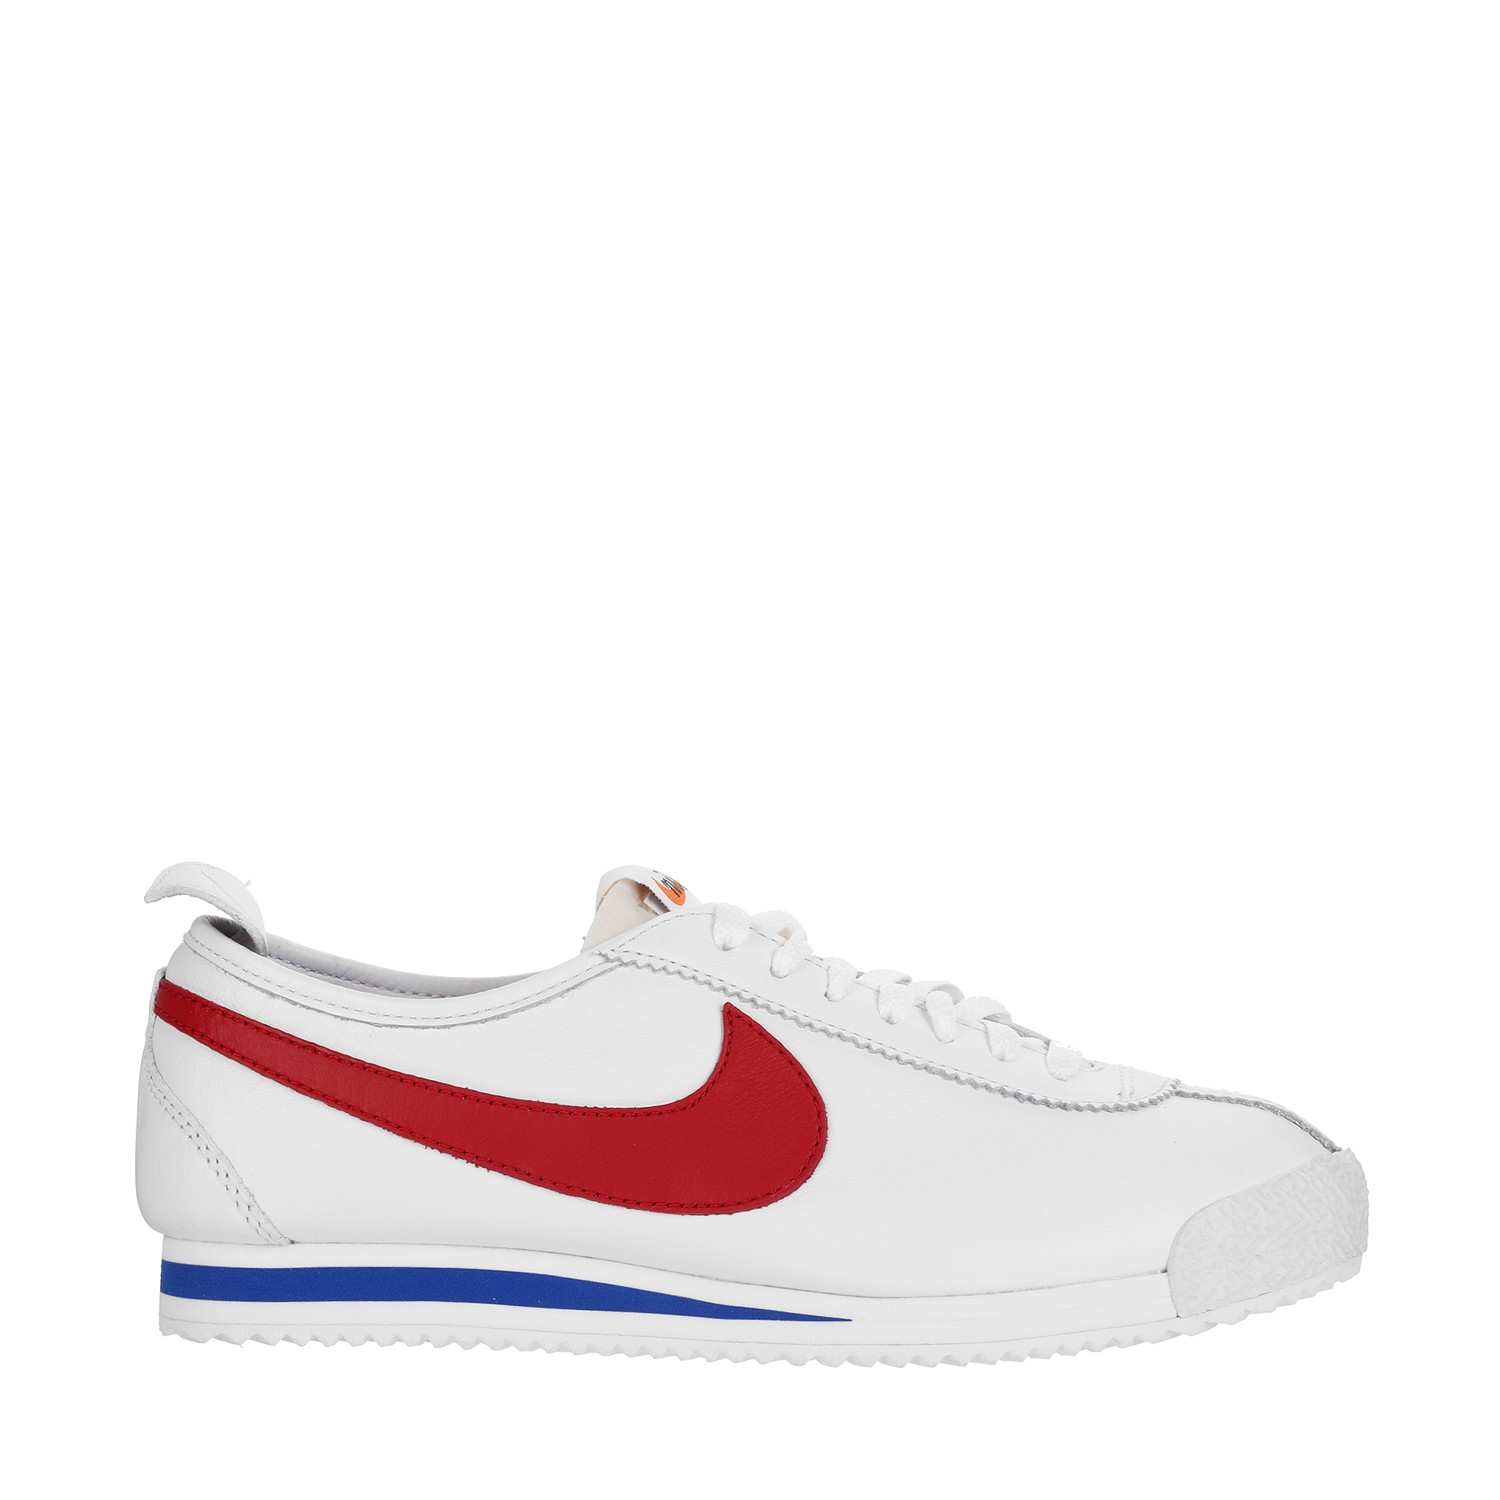 nike cortez 72 in red lyst. Black Bedroom Furniture Sets. Home Design Ideas